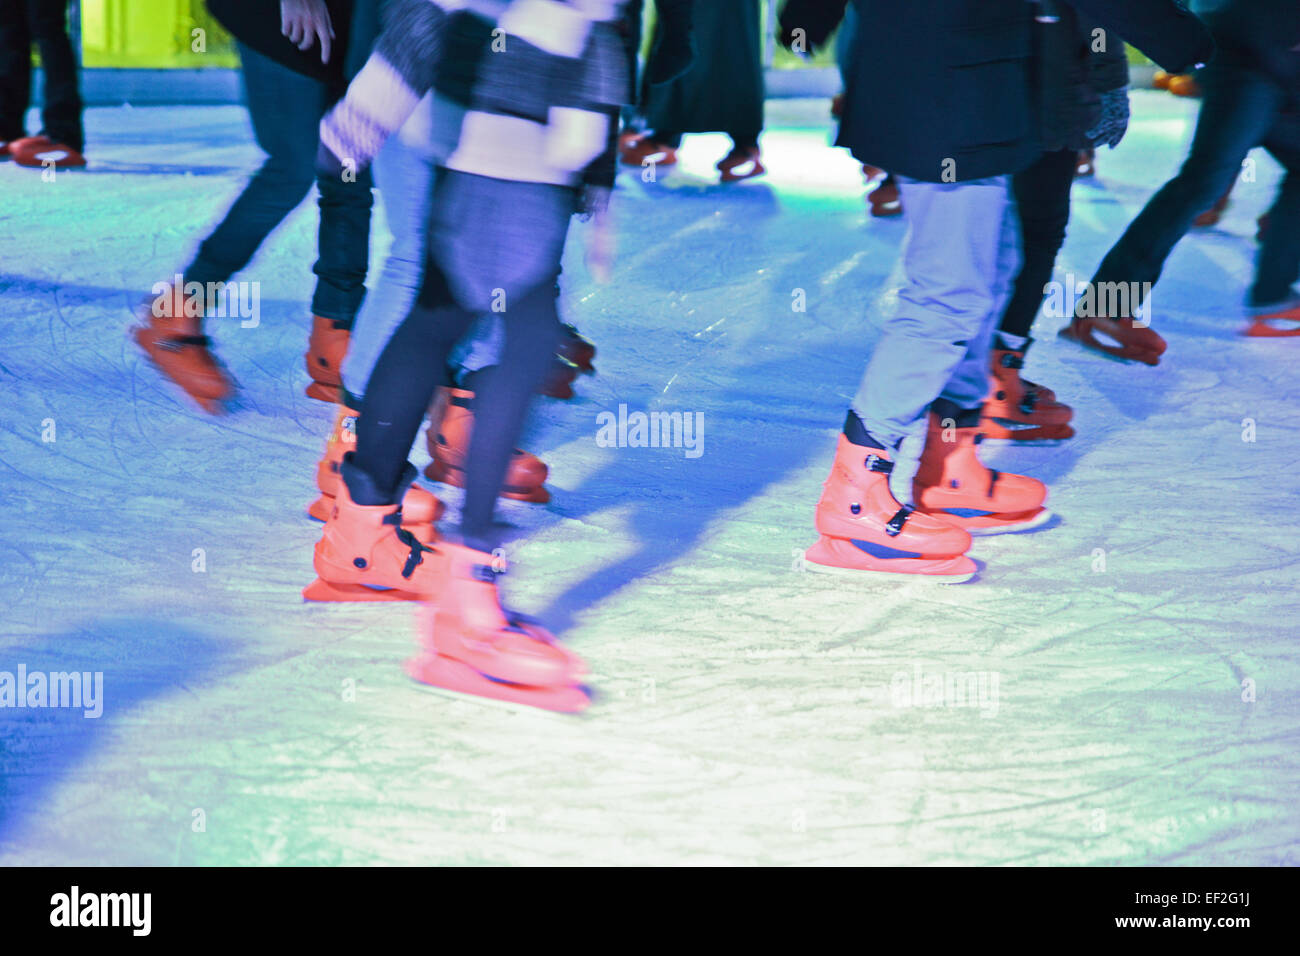 Blurred lower body shoot of ice skaters on out door ice rink - Stock Image